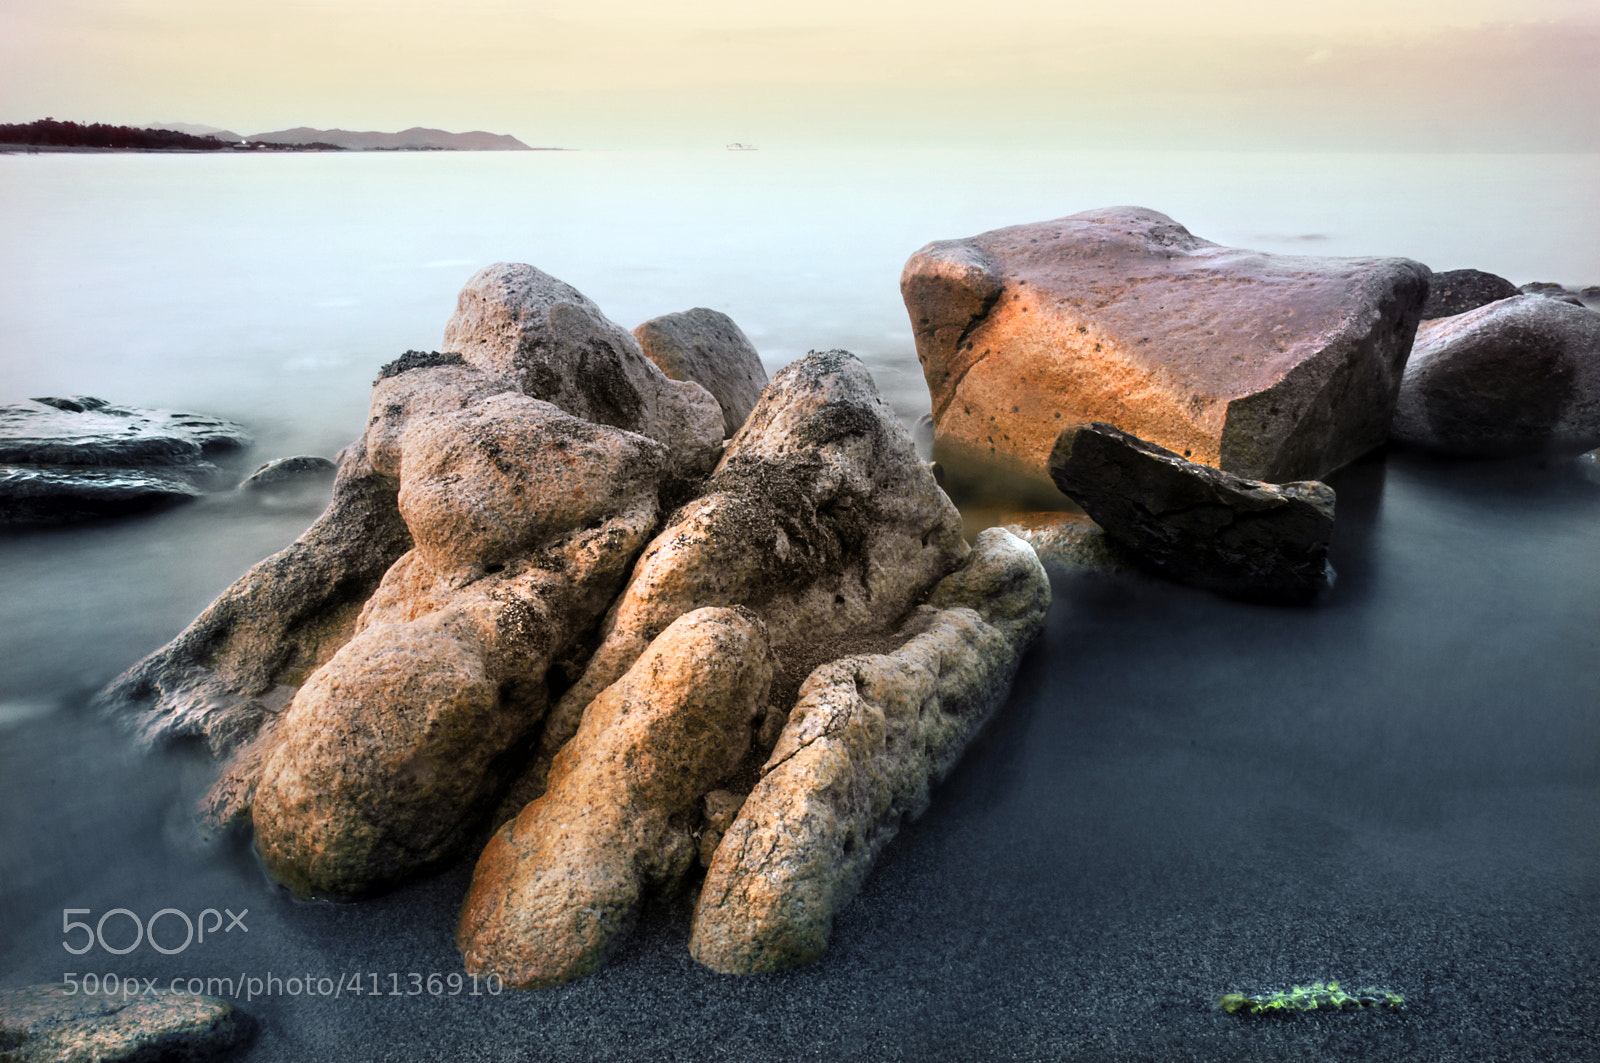 Photograph The hand of rock by Fulvio Mattana on 500px